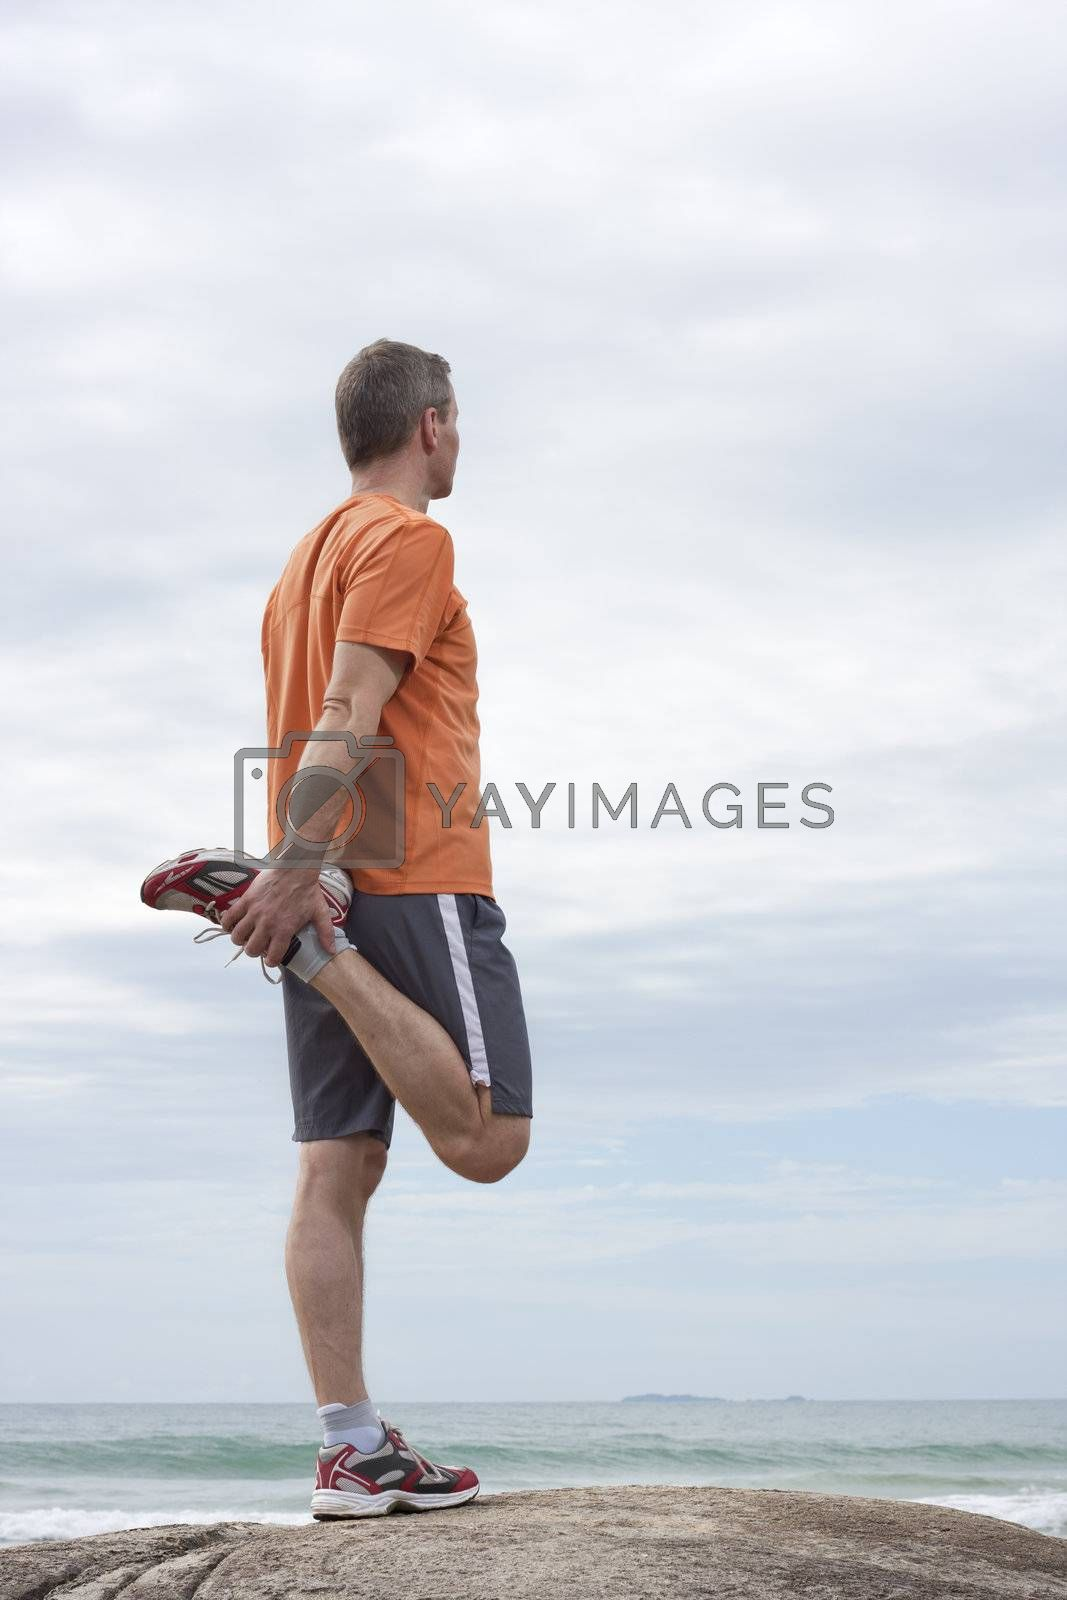 Royalty free image of Mature runner doing exercises at a beach by ArtmannWitte